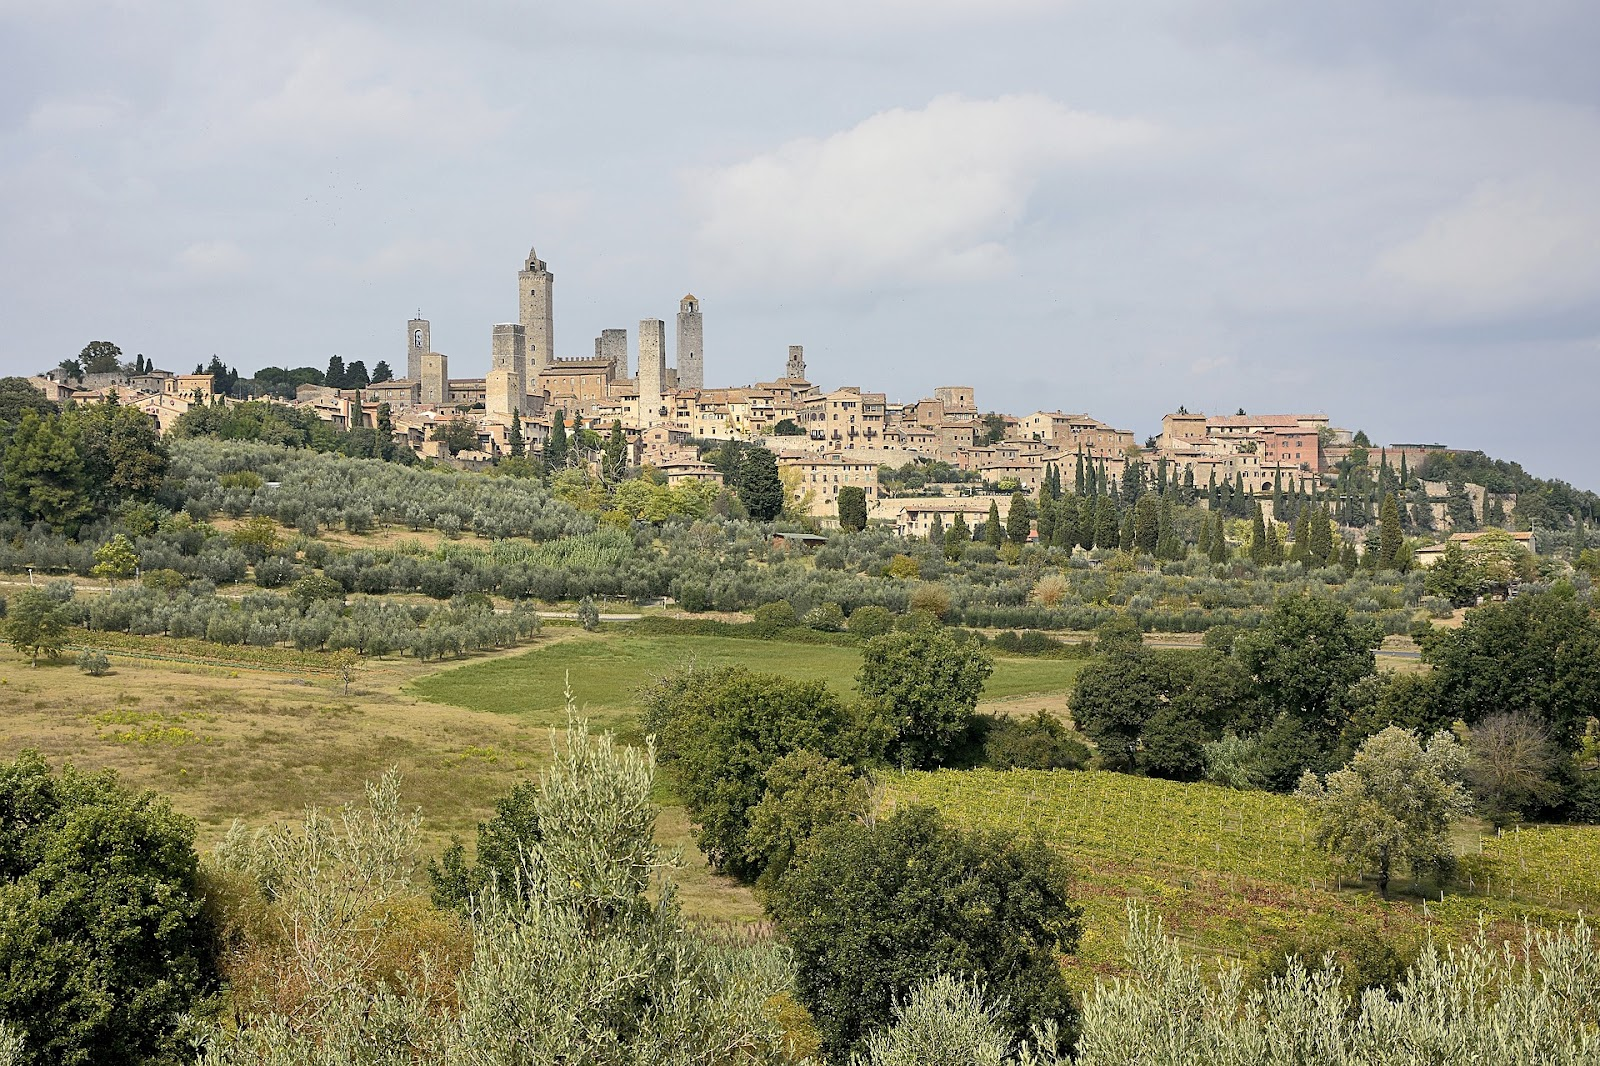 medieval brick towers in sam gimignano skyline city view from a distance and green tuscan fields landscape in foreground